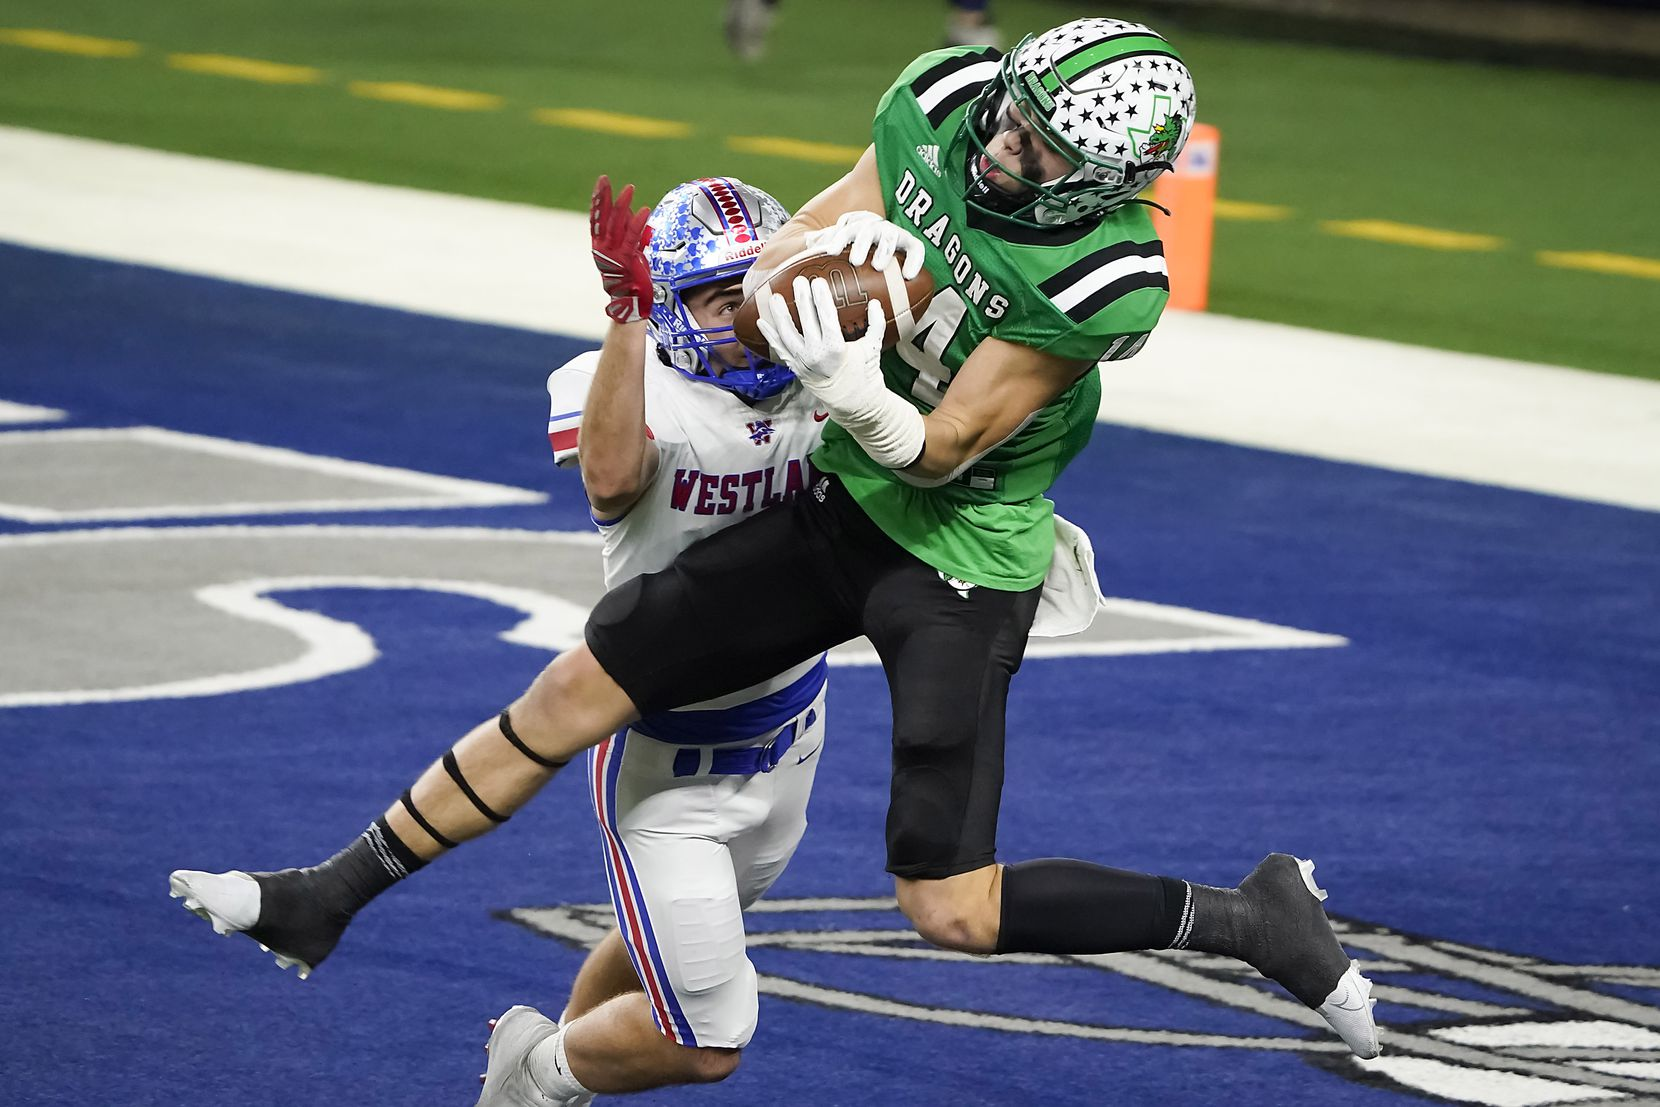 Southlake Carroll wide receiver Brady Boyd (14) catches a 27-yard touchdown pass as Austin Westlake defensive back Jax Crockett (4) defends during the second quarter of the Class 6A Division I state football championship game at AT&T Stadium on Saturday, Jan. 16, 2021, in Arlington, Texas.